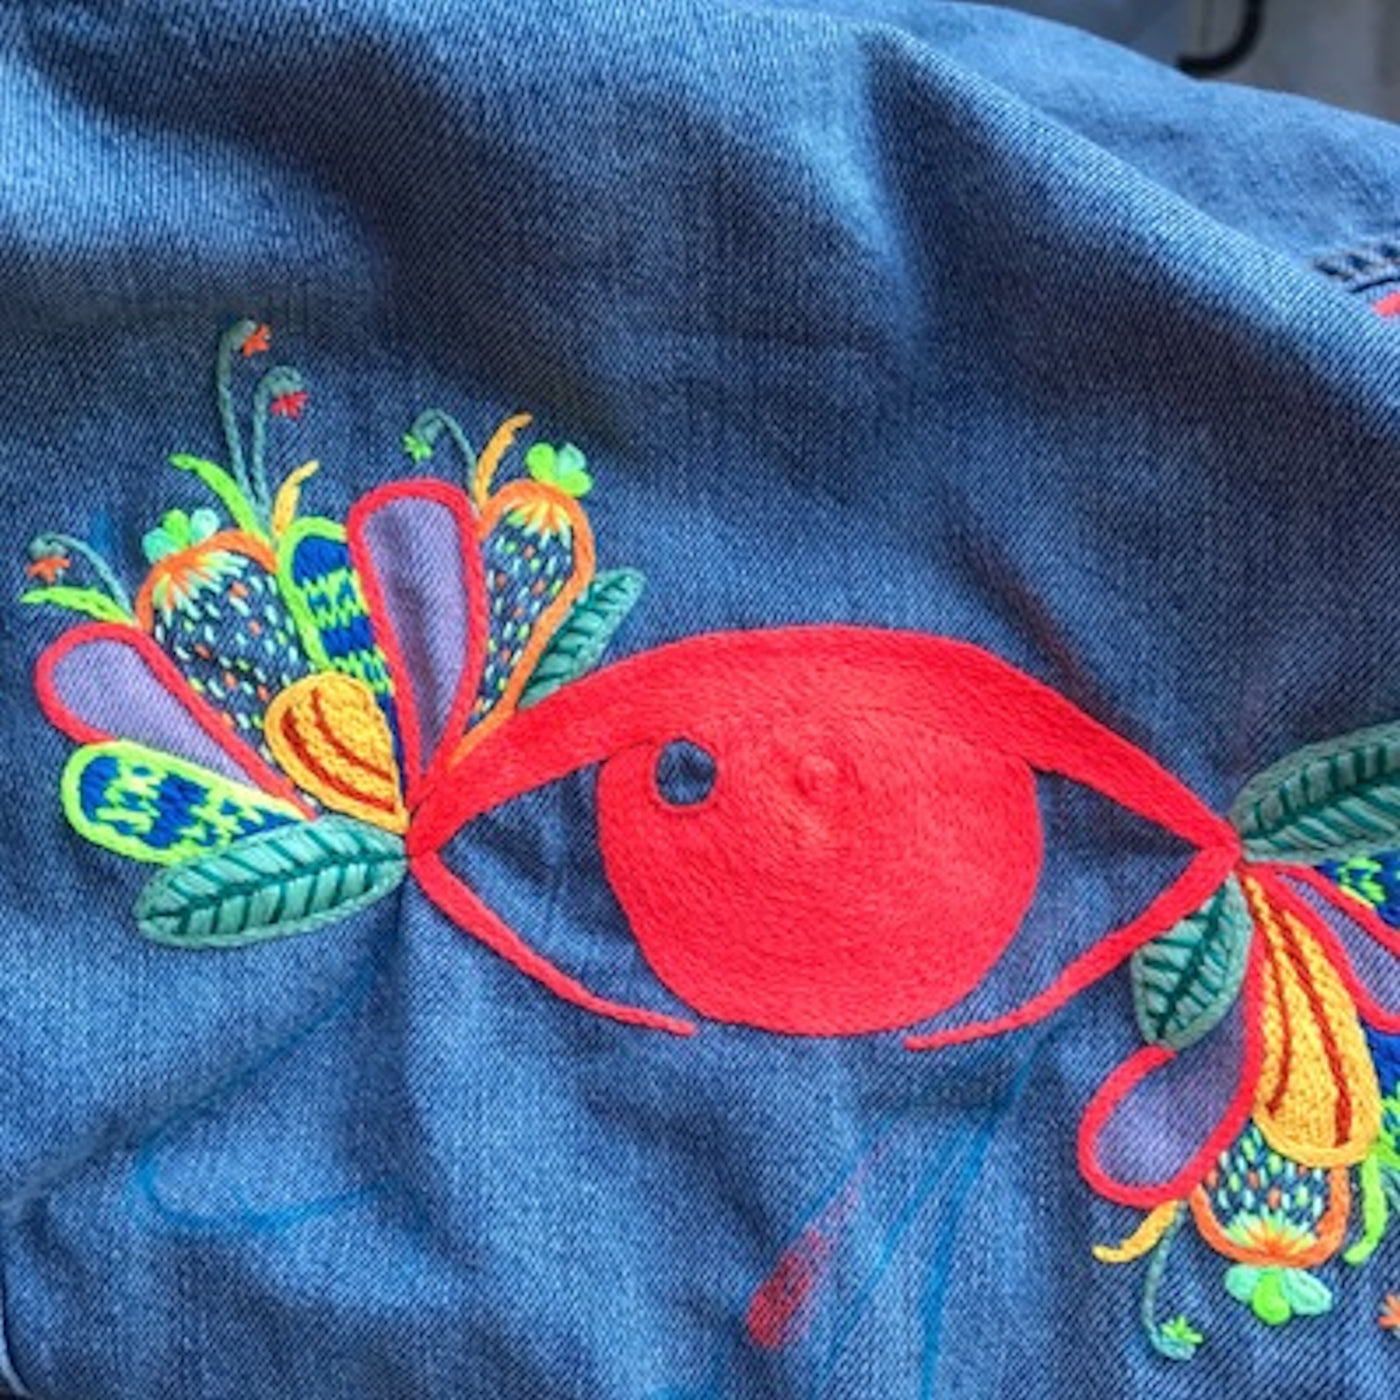 Embroidery Workshop - July 12th